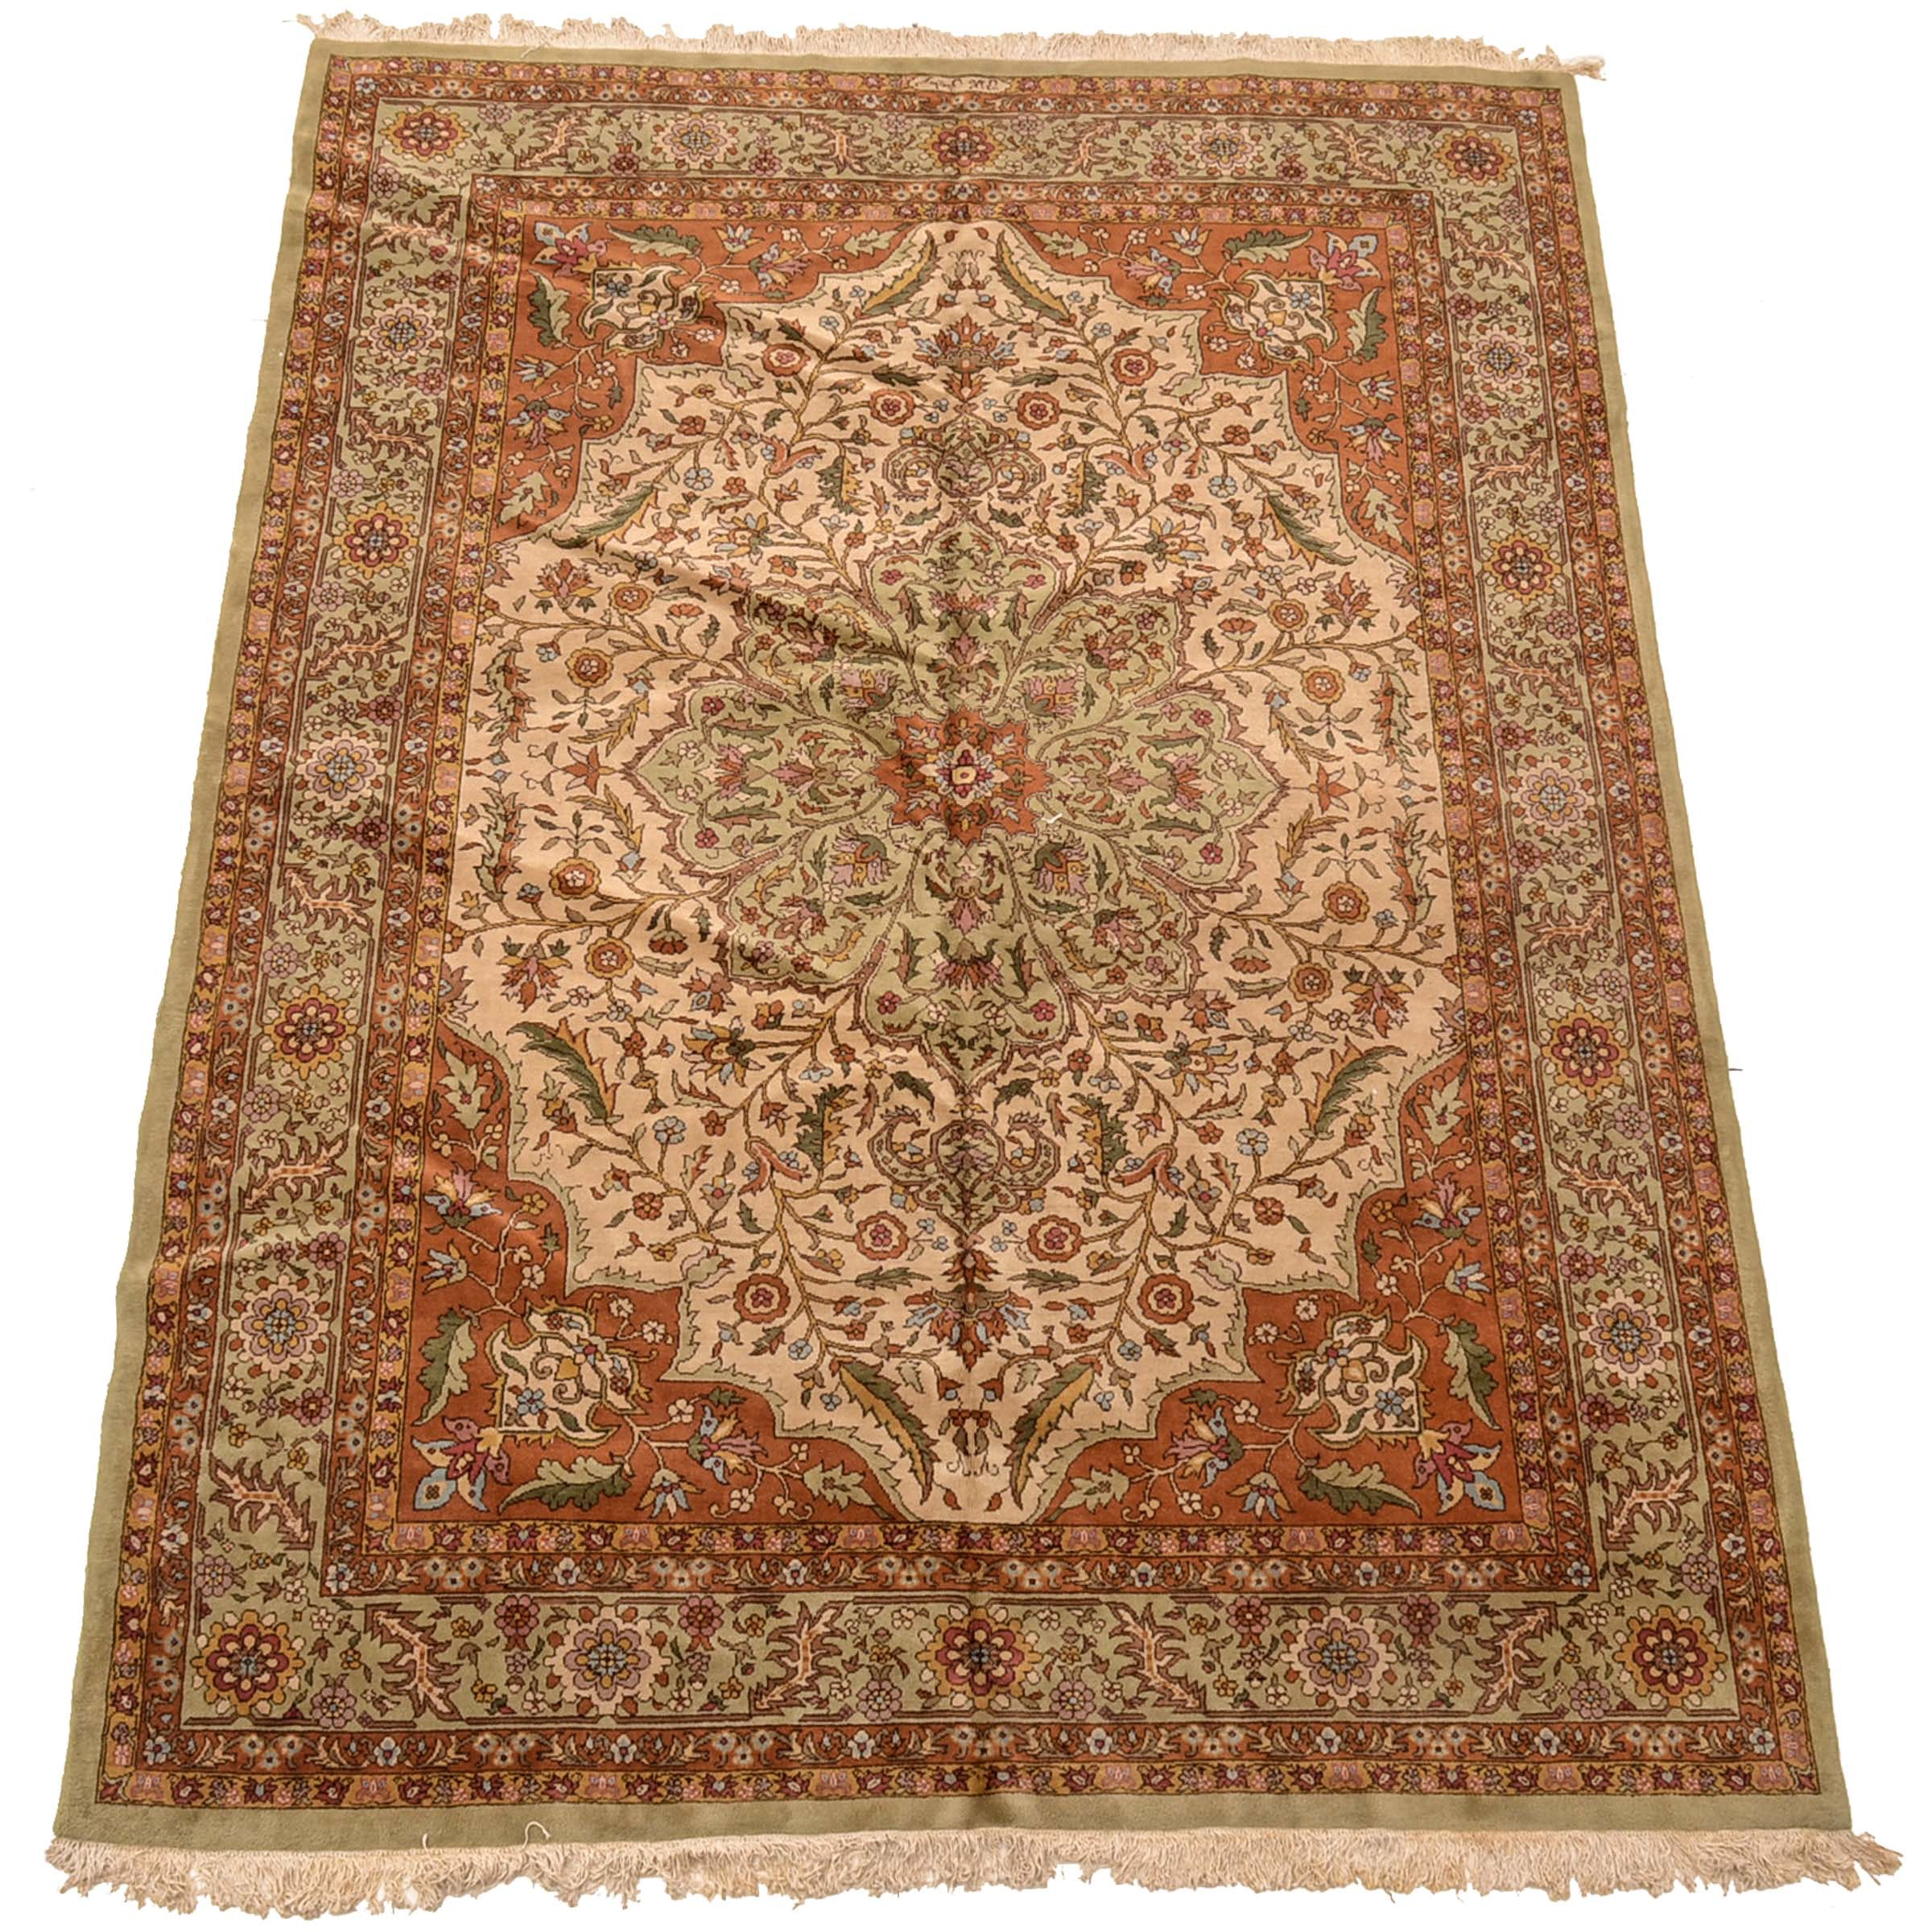 Inscribed Hand-Knotted Romanian Persian-Style Area Rug